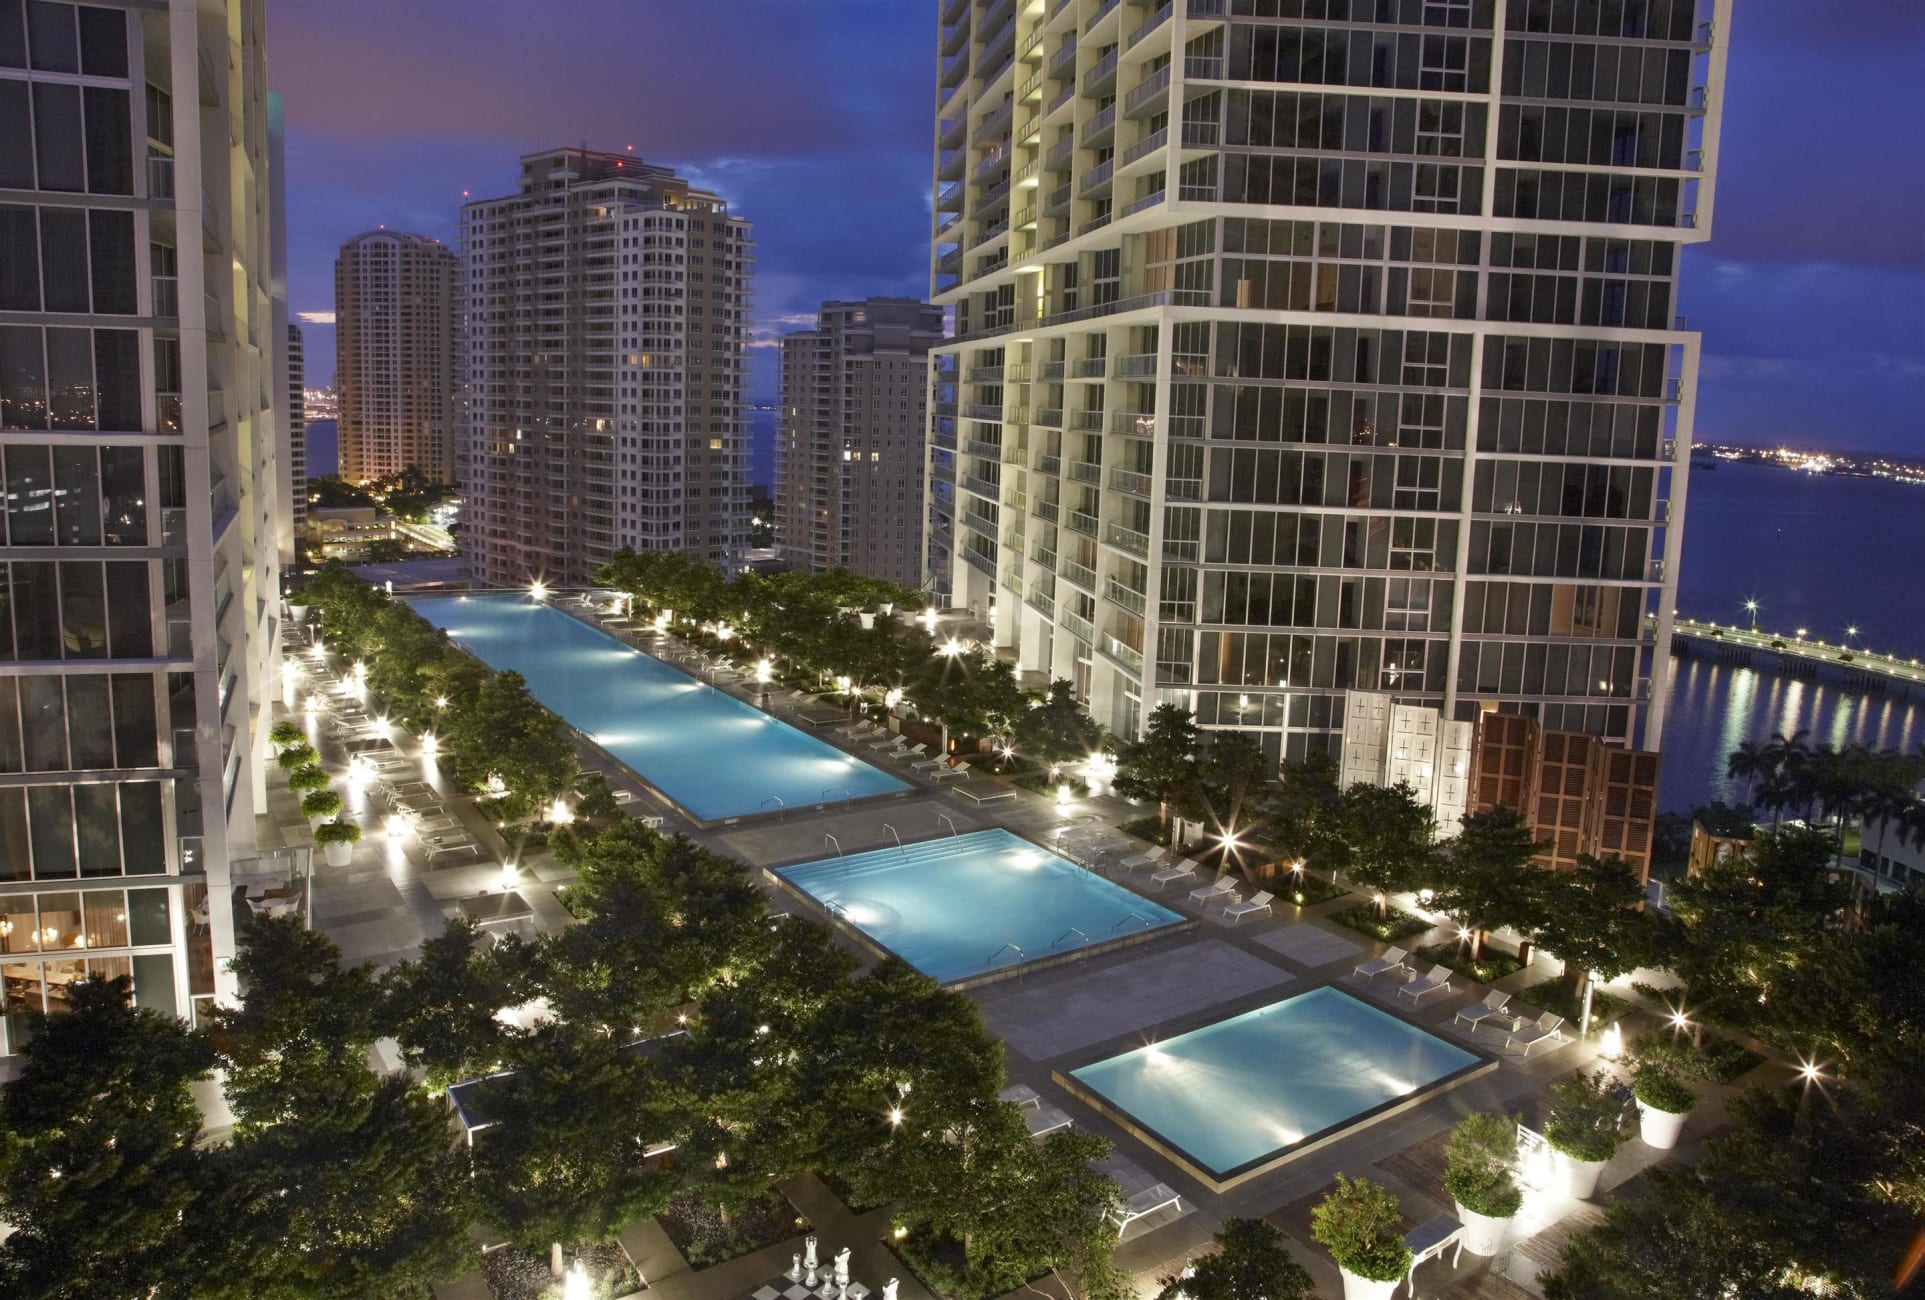 Miami Hotels Hotels Warranty Offer 2020